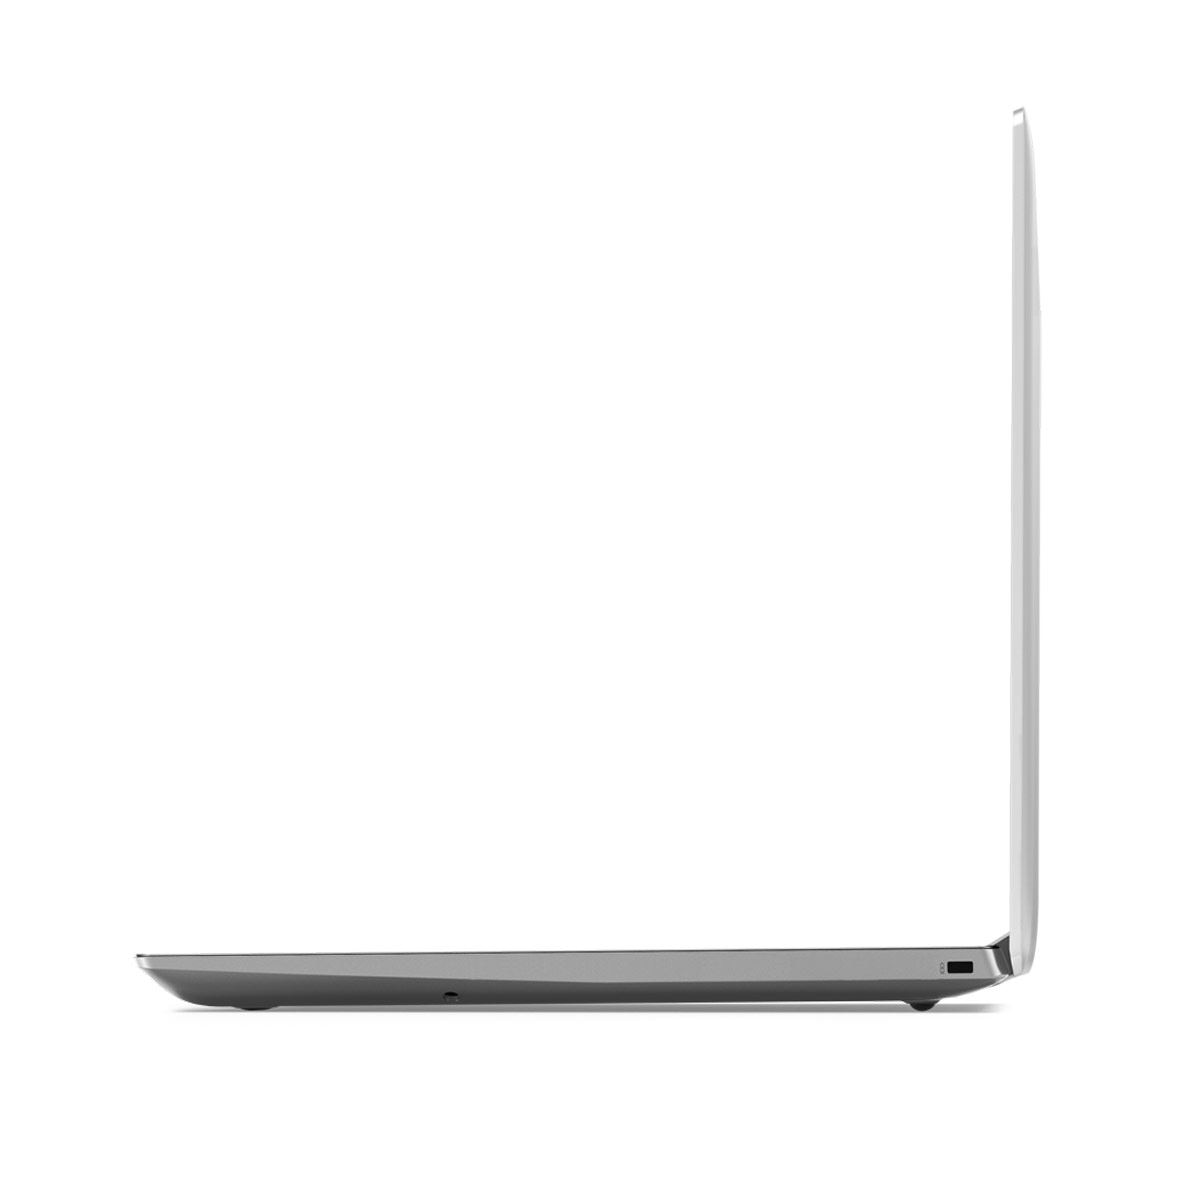 Laptop Lenovo IdeaPad 330 1 Tb